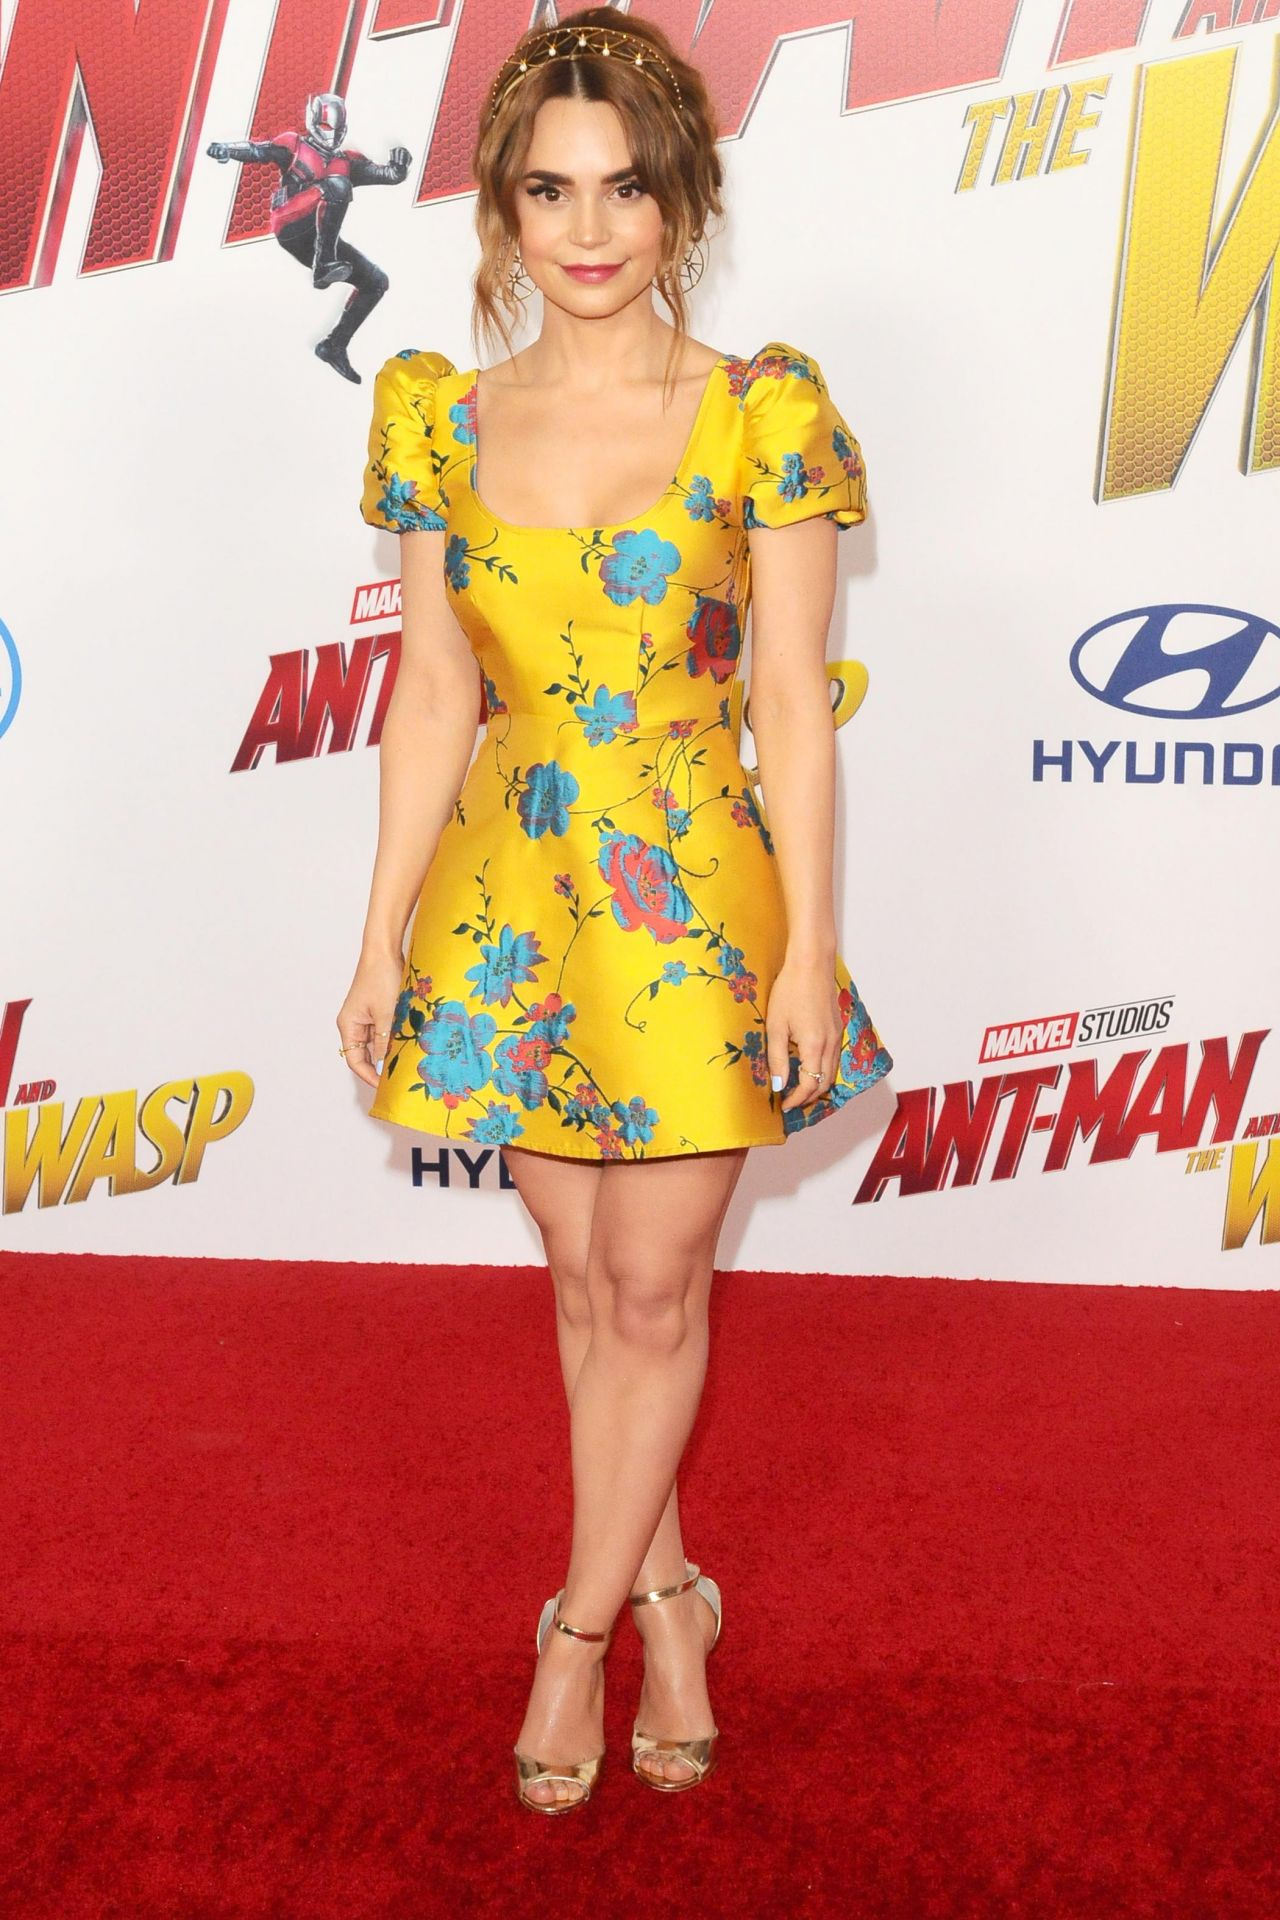 Rosanna Pansino Ant Man And The Wasp Premiere In La